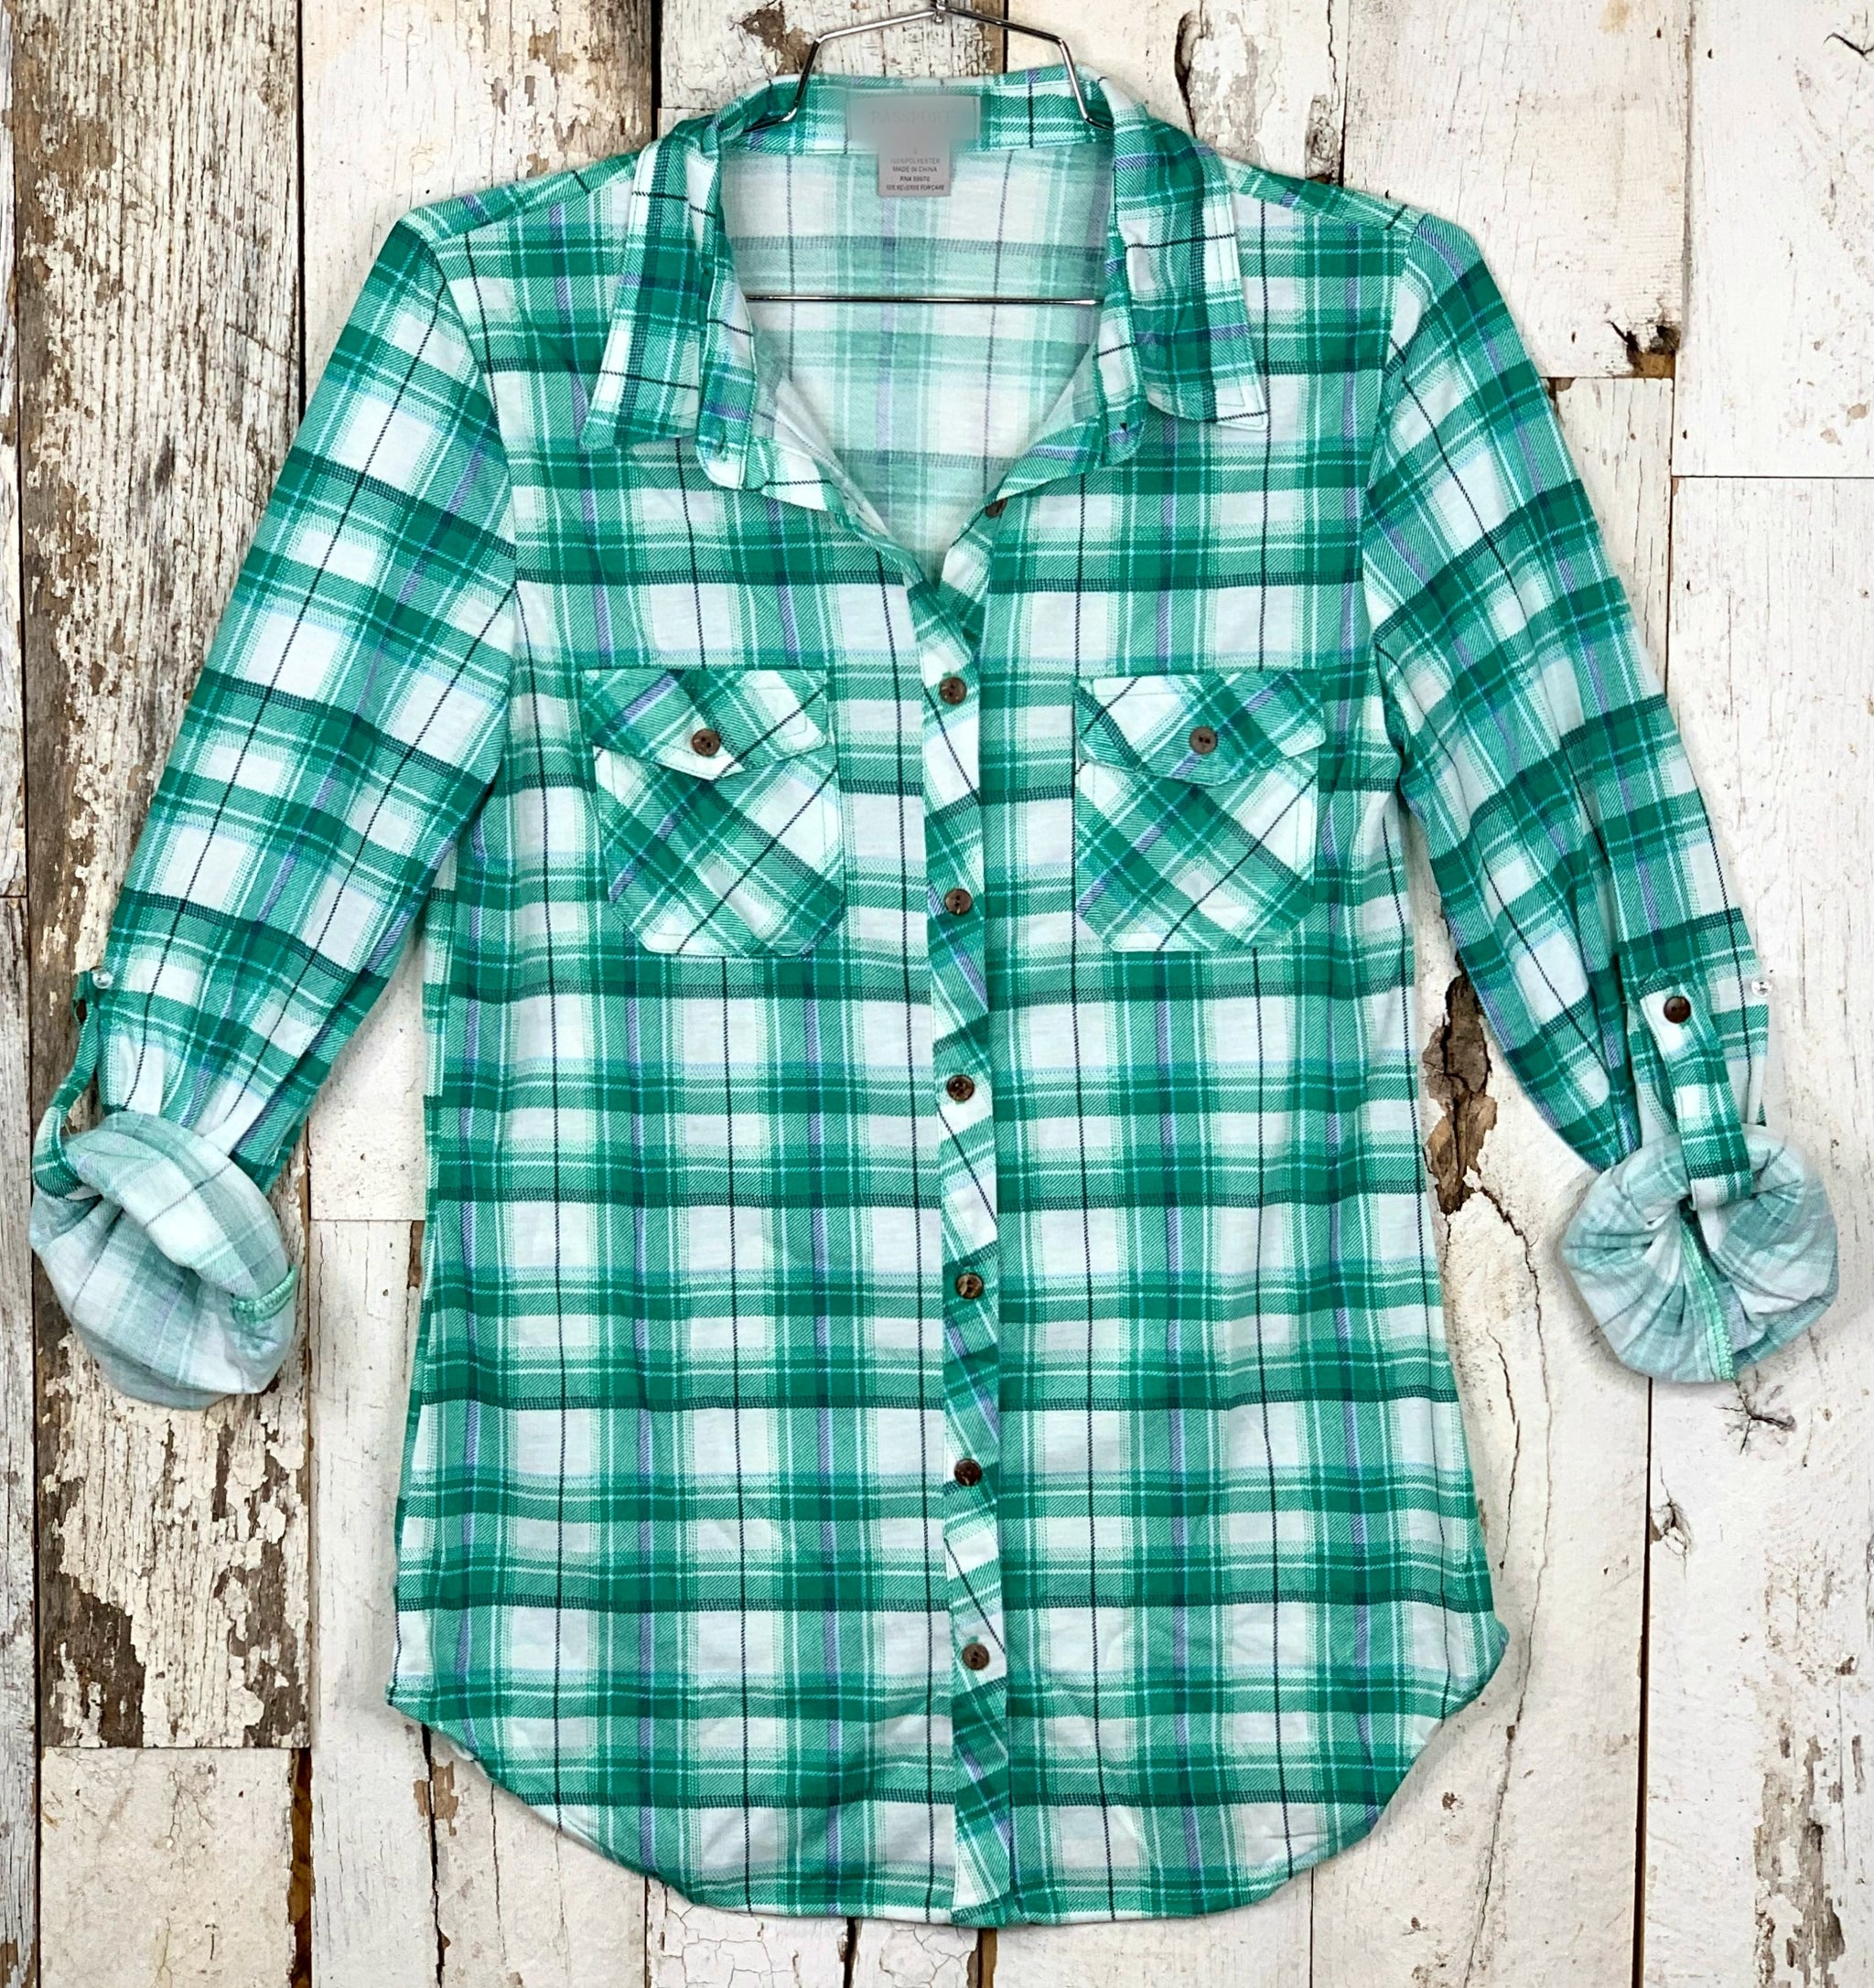 Penny Plaid Flannel Top - Green/White